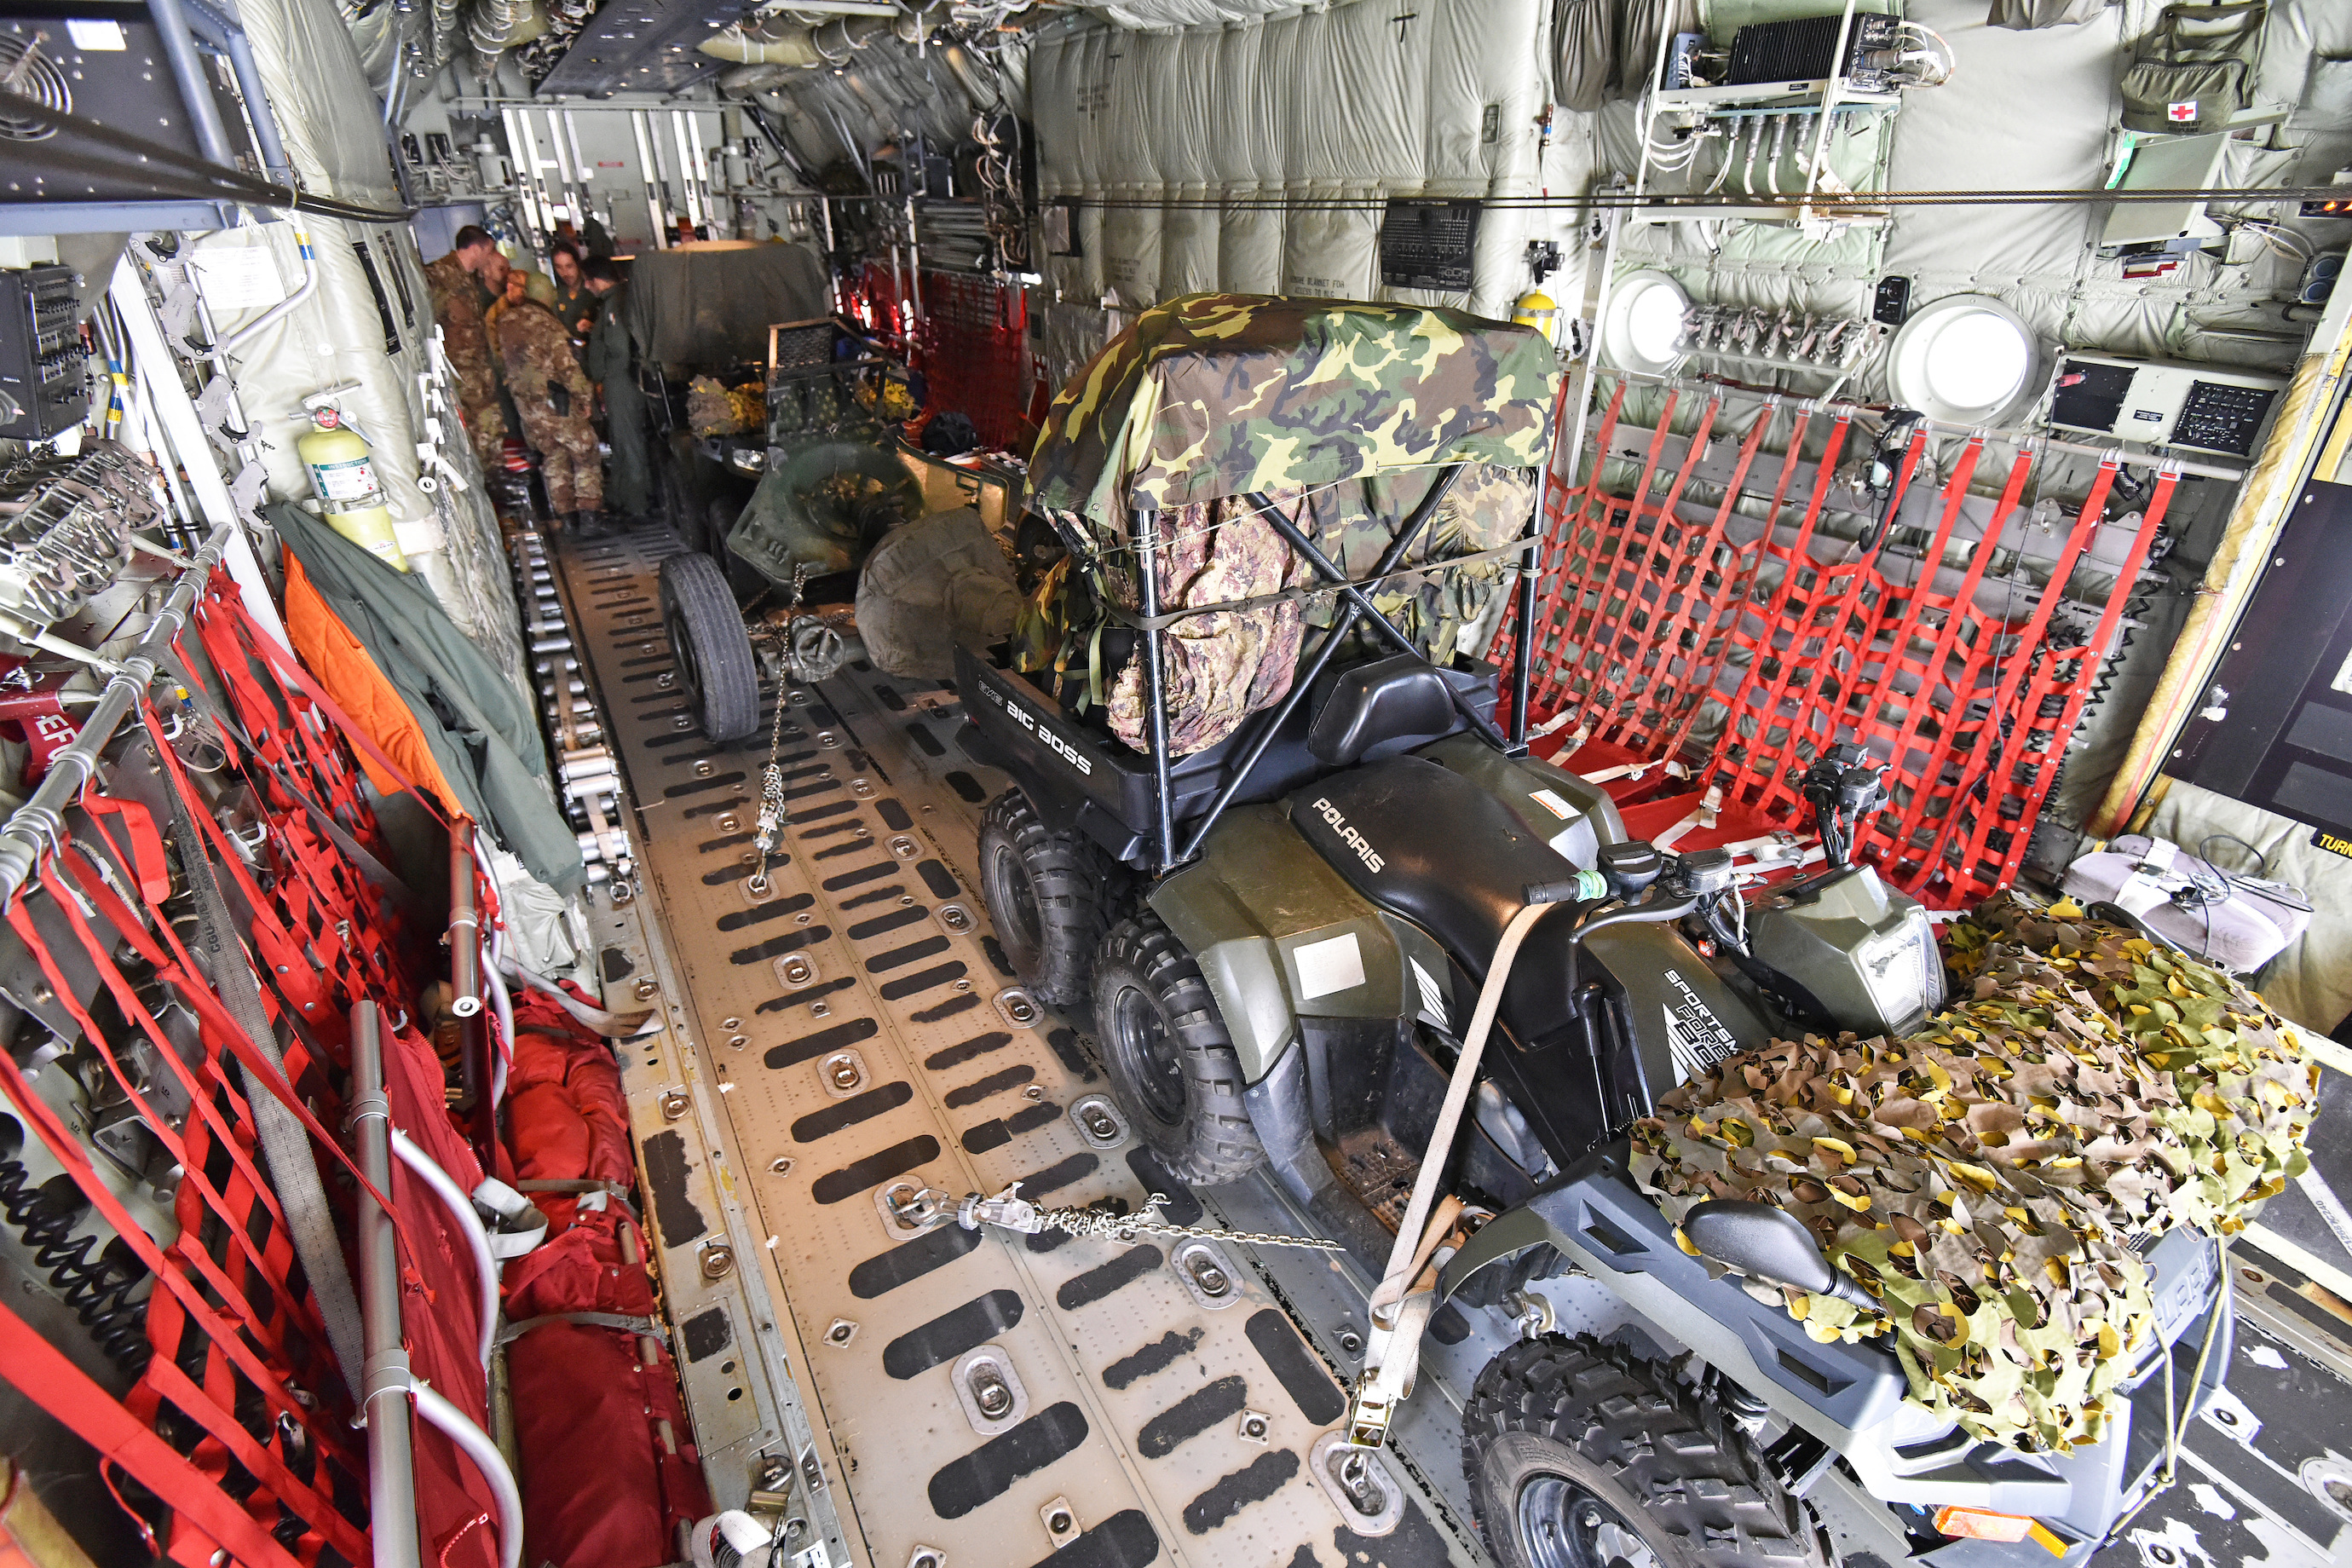 Two All Terrain Vehicles (ATVs) of the 185th Airborne Artillery Regiment, Folgore Brigade, are loaded into a Italian Air Force C-130 Hercules from 46th BA at Aviano Air Base, in Pordenone, Italy Oct. 11, 2017 during Exercise Swift Response 2017, Phase 2. Swift Response links to Exercise Saber Guardian 17, a U.S. Army Europe-led, multinational exercise that spans across Bulgaria, Hungary, and Romania with more than 25,000 service members from 22 allied and partner nations. (U.S. Army Photos by Visual Information Specialist Paolo Bovo/Released)